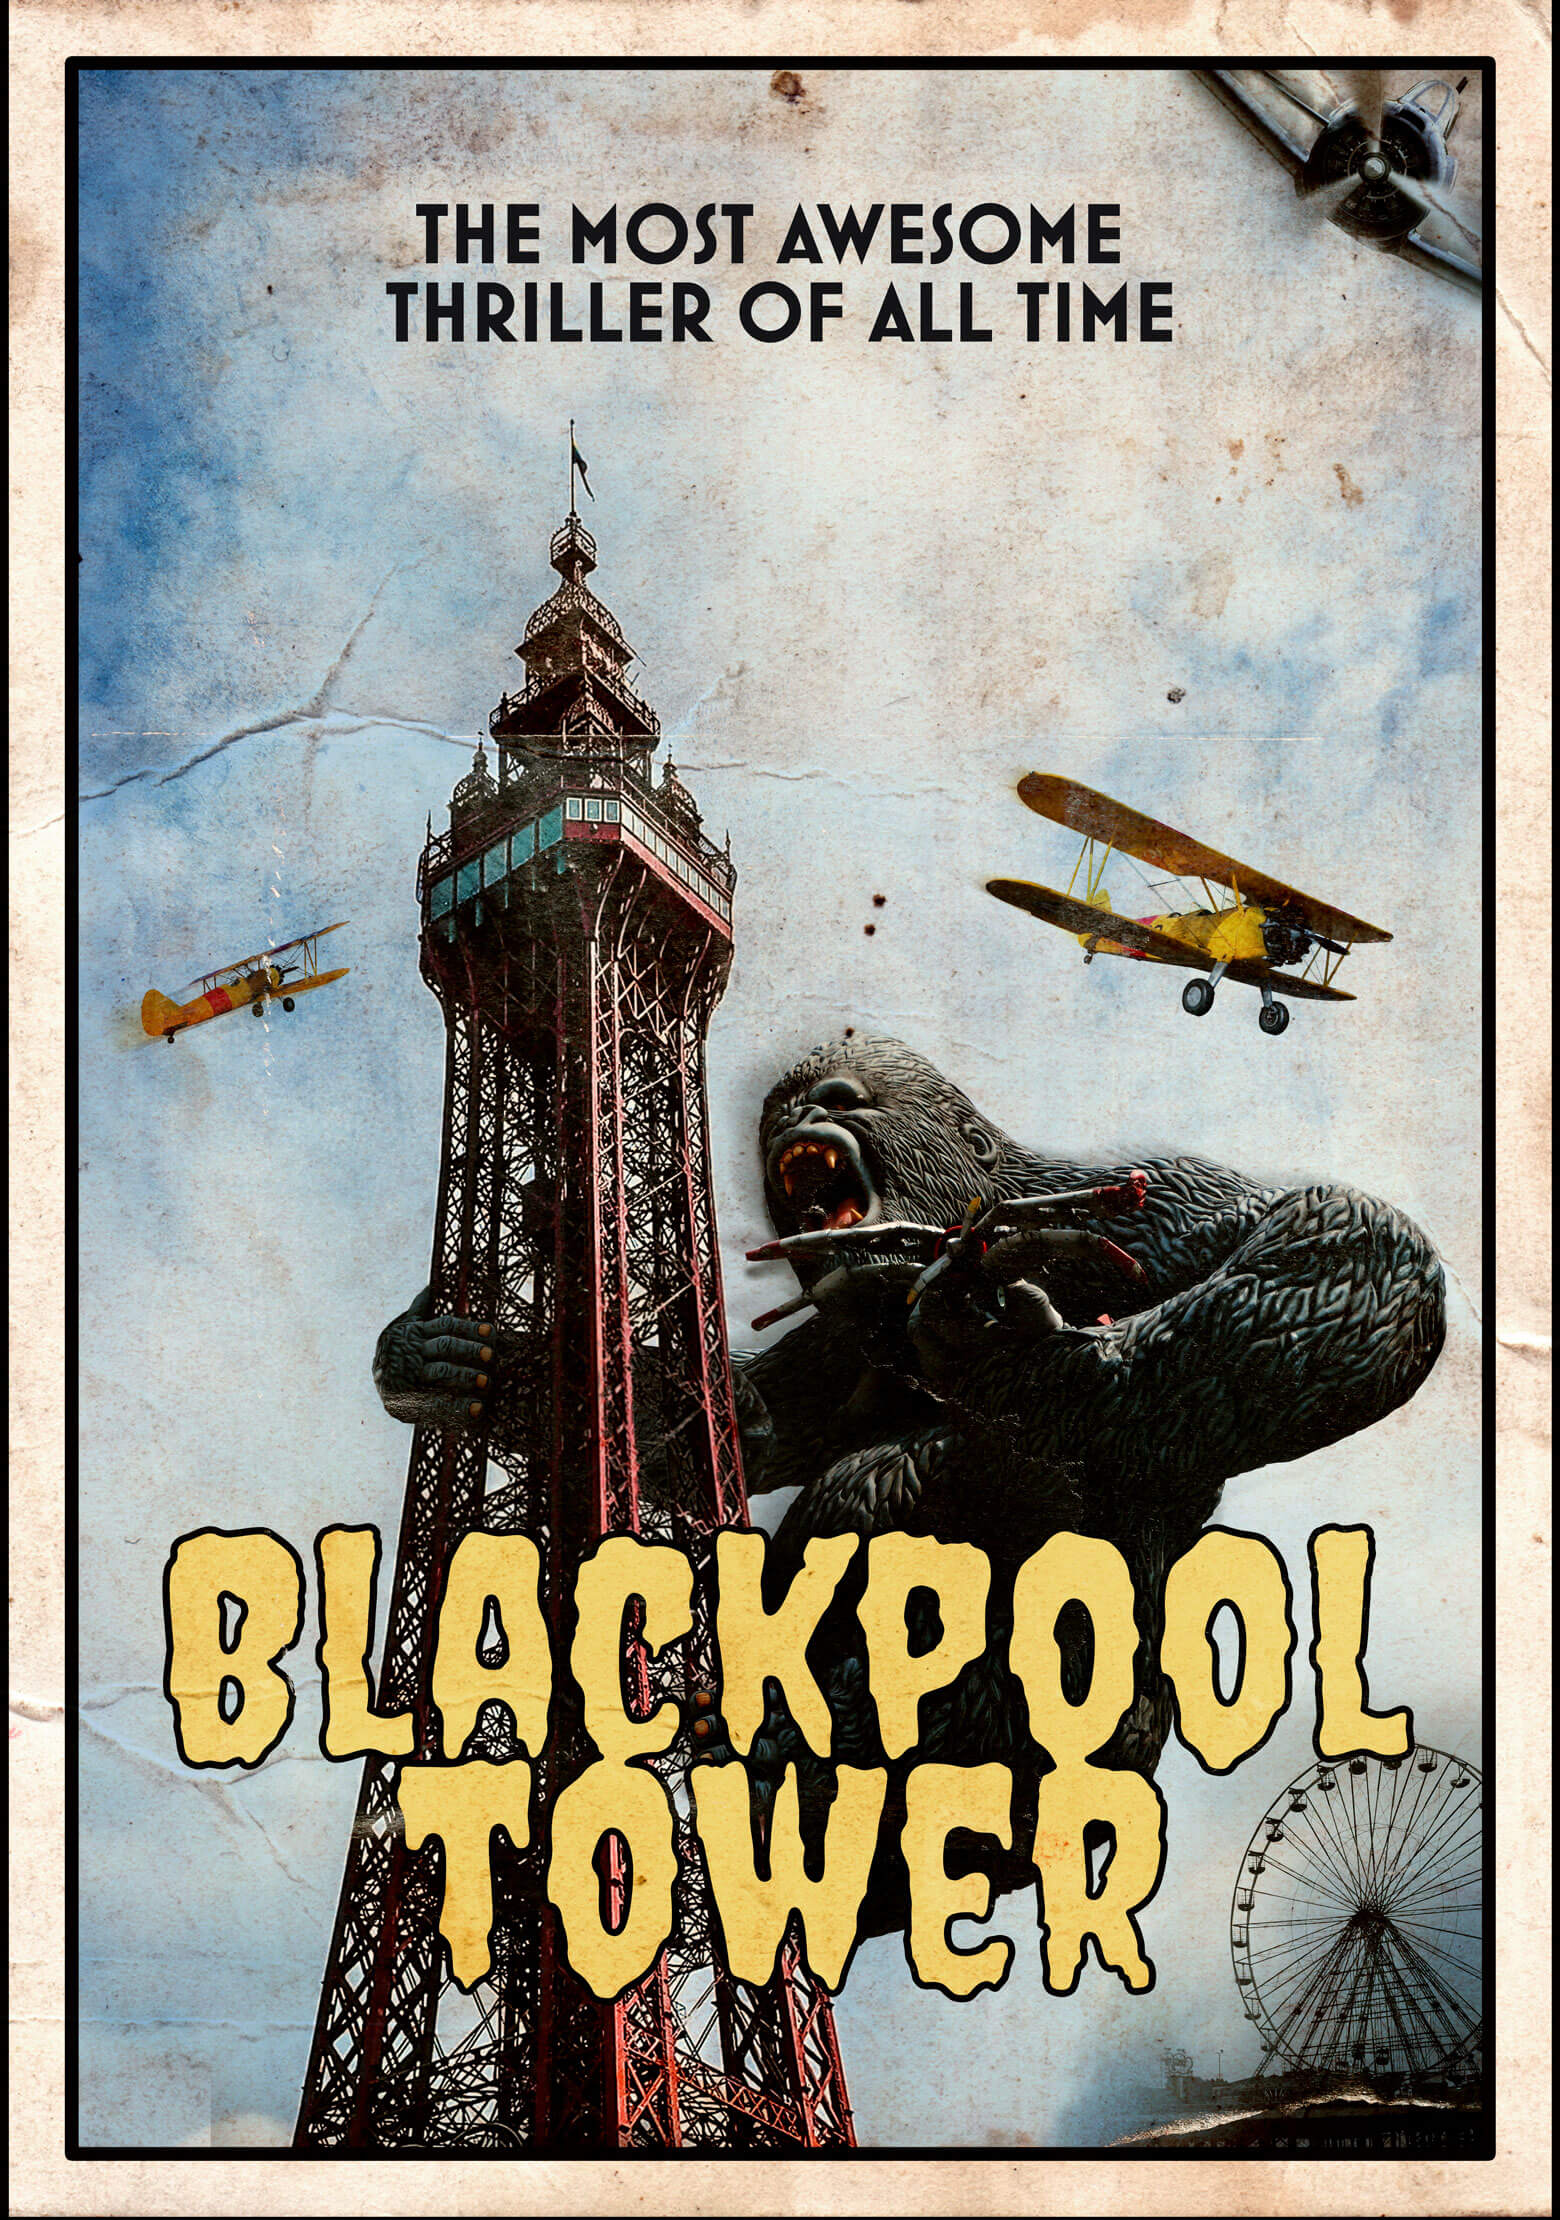 King Kong at Blackpool Tower